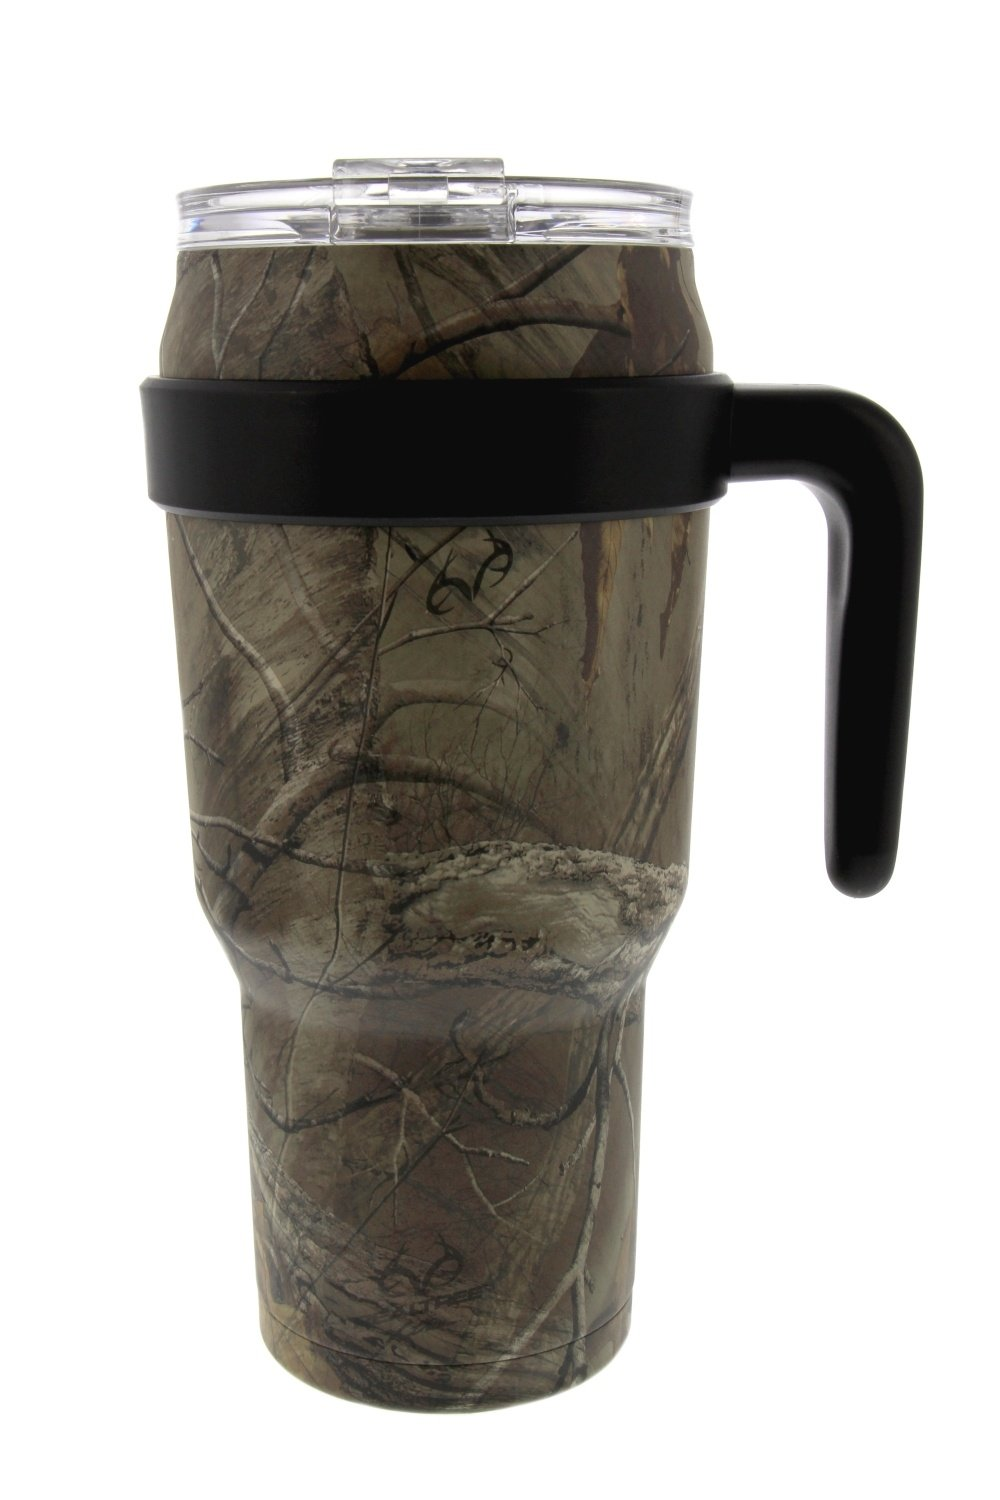 Reduce COLD-1 Stainless Steel 40 oz Thermal Mug- Vacuum Insulated Sweat Proof Travel Mug- Keep Beverages Ice Cold Up To 30 Hours-Includes Lid and Ergonomic Handle (Realtree Xtra Camo)